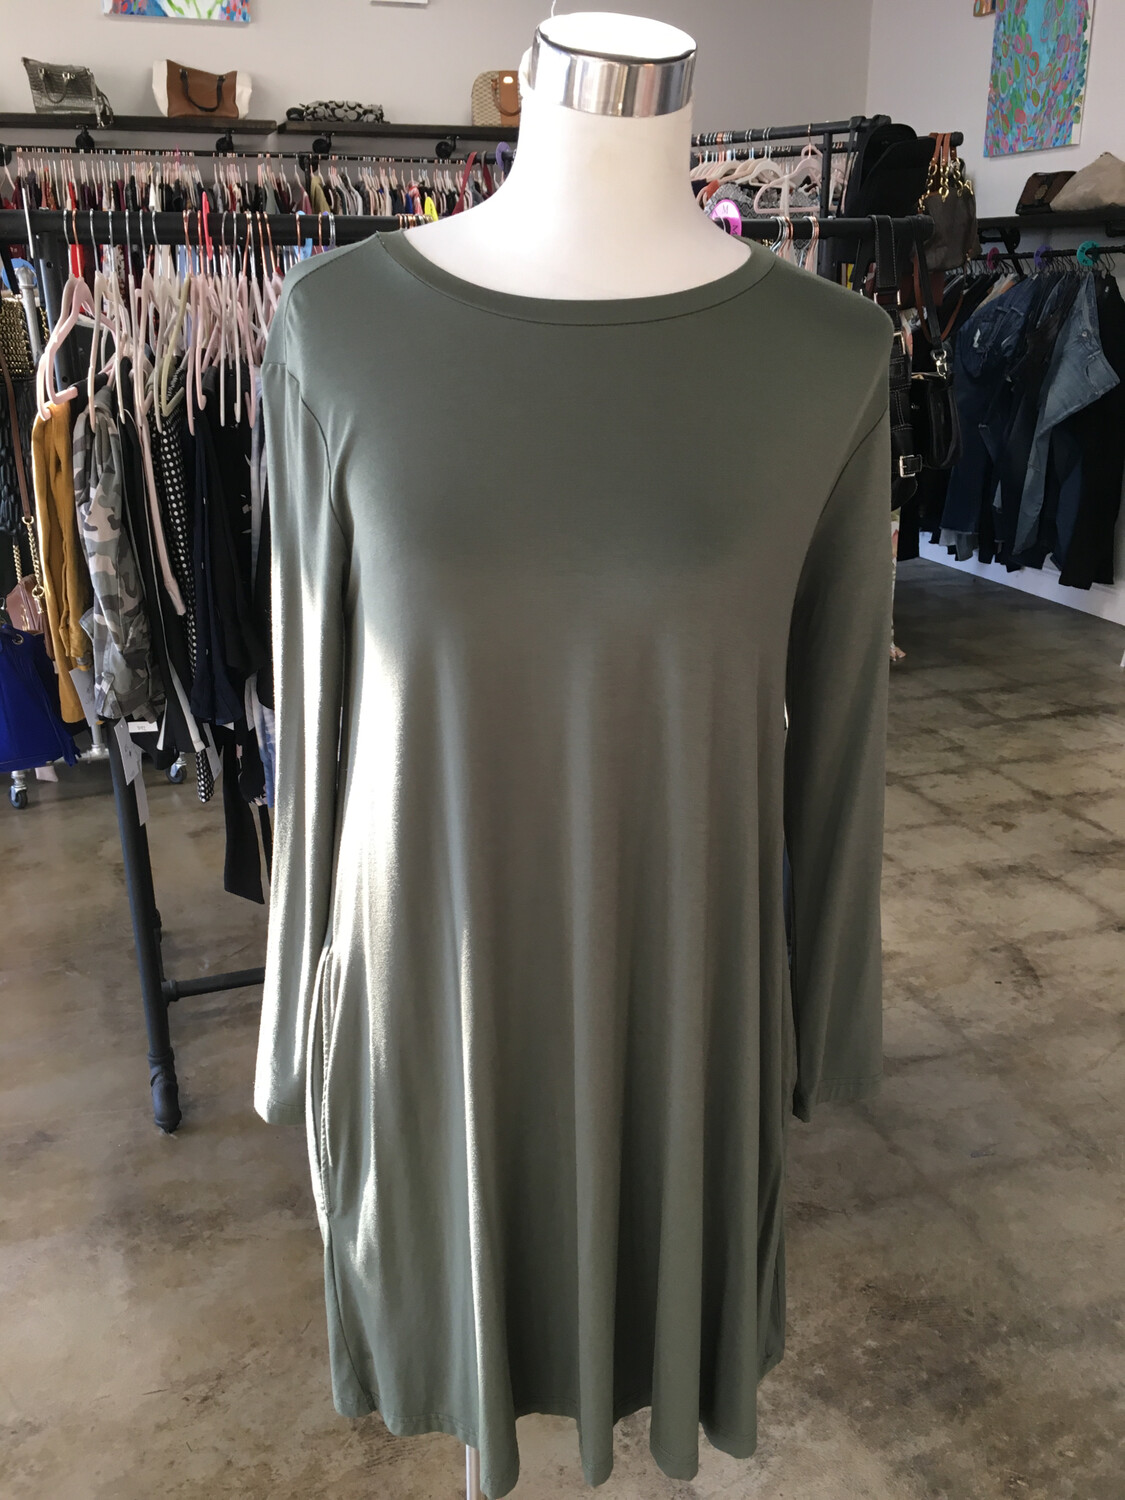 Piko 1988 Olive Green Dress - S